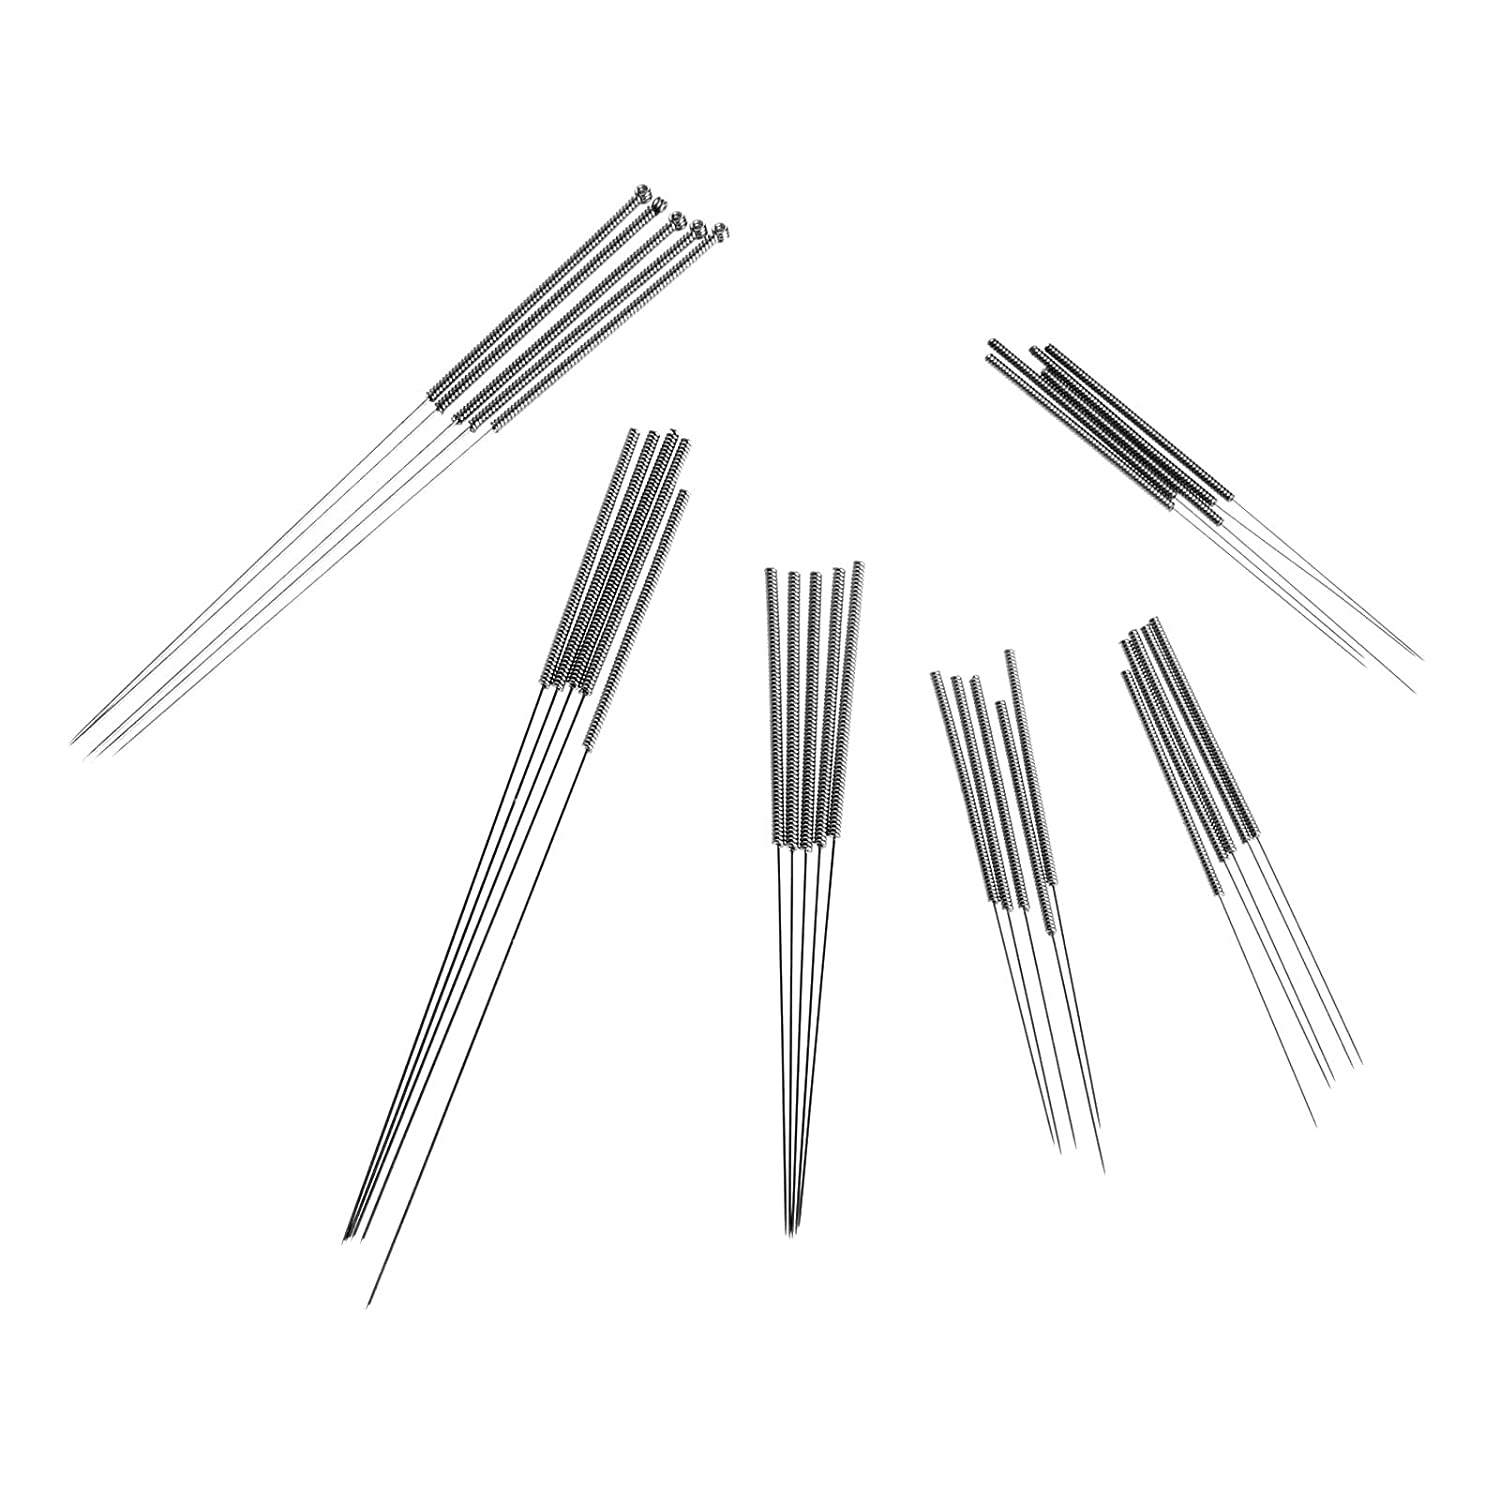 0.4 mm Drill Bits for 3D Printer Nozzle Cleaning Kit Stainless Steel Nozzle Cleaning Tool Kit (5 Pack) MUXSAM